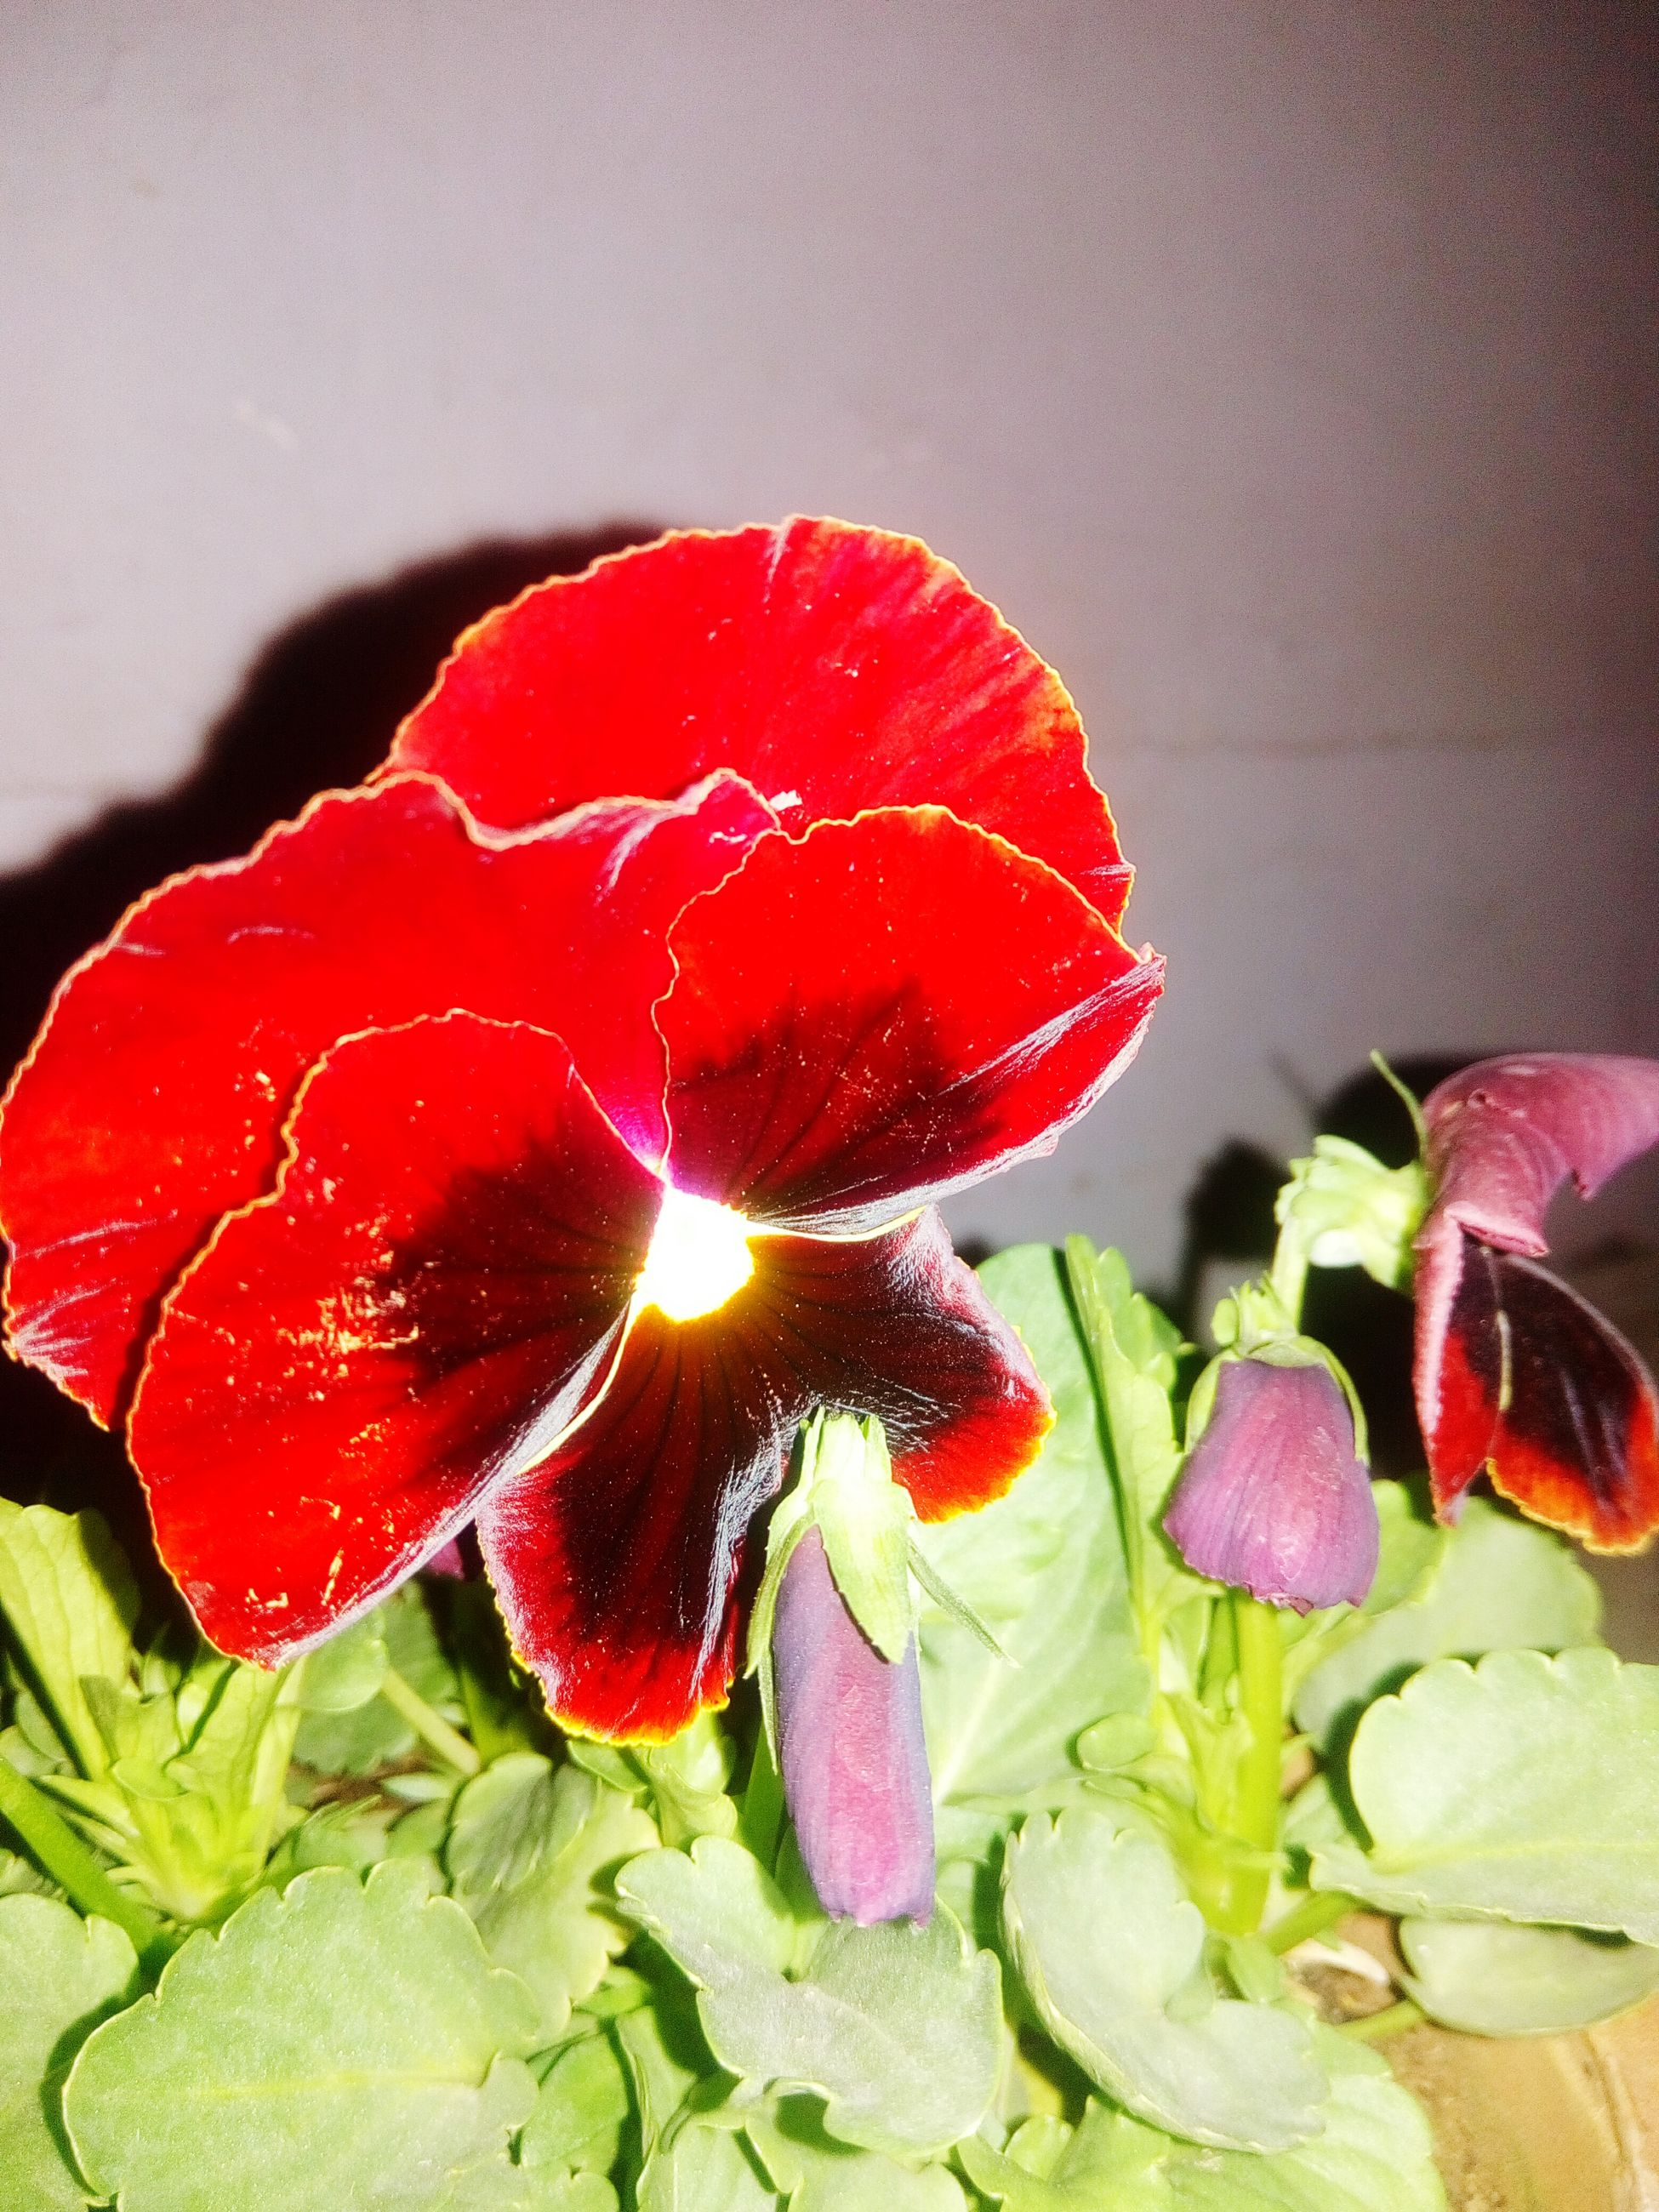 red, freshness, flower, close-up, petal, no people, indoors, food, fragility, healthy eating, nature, day